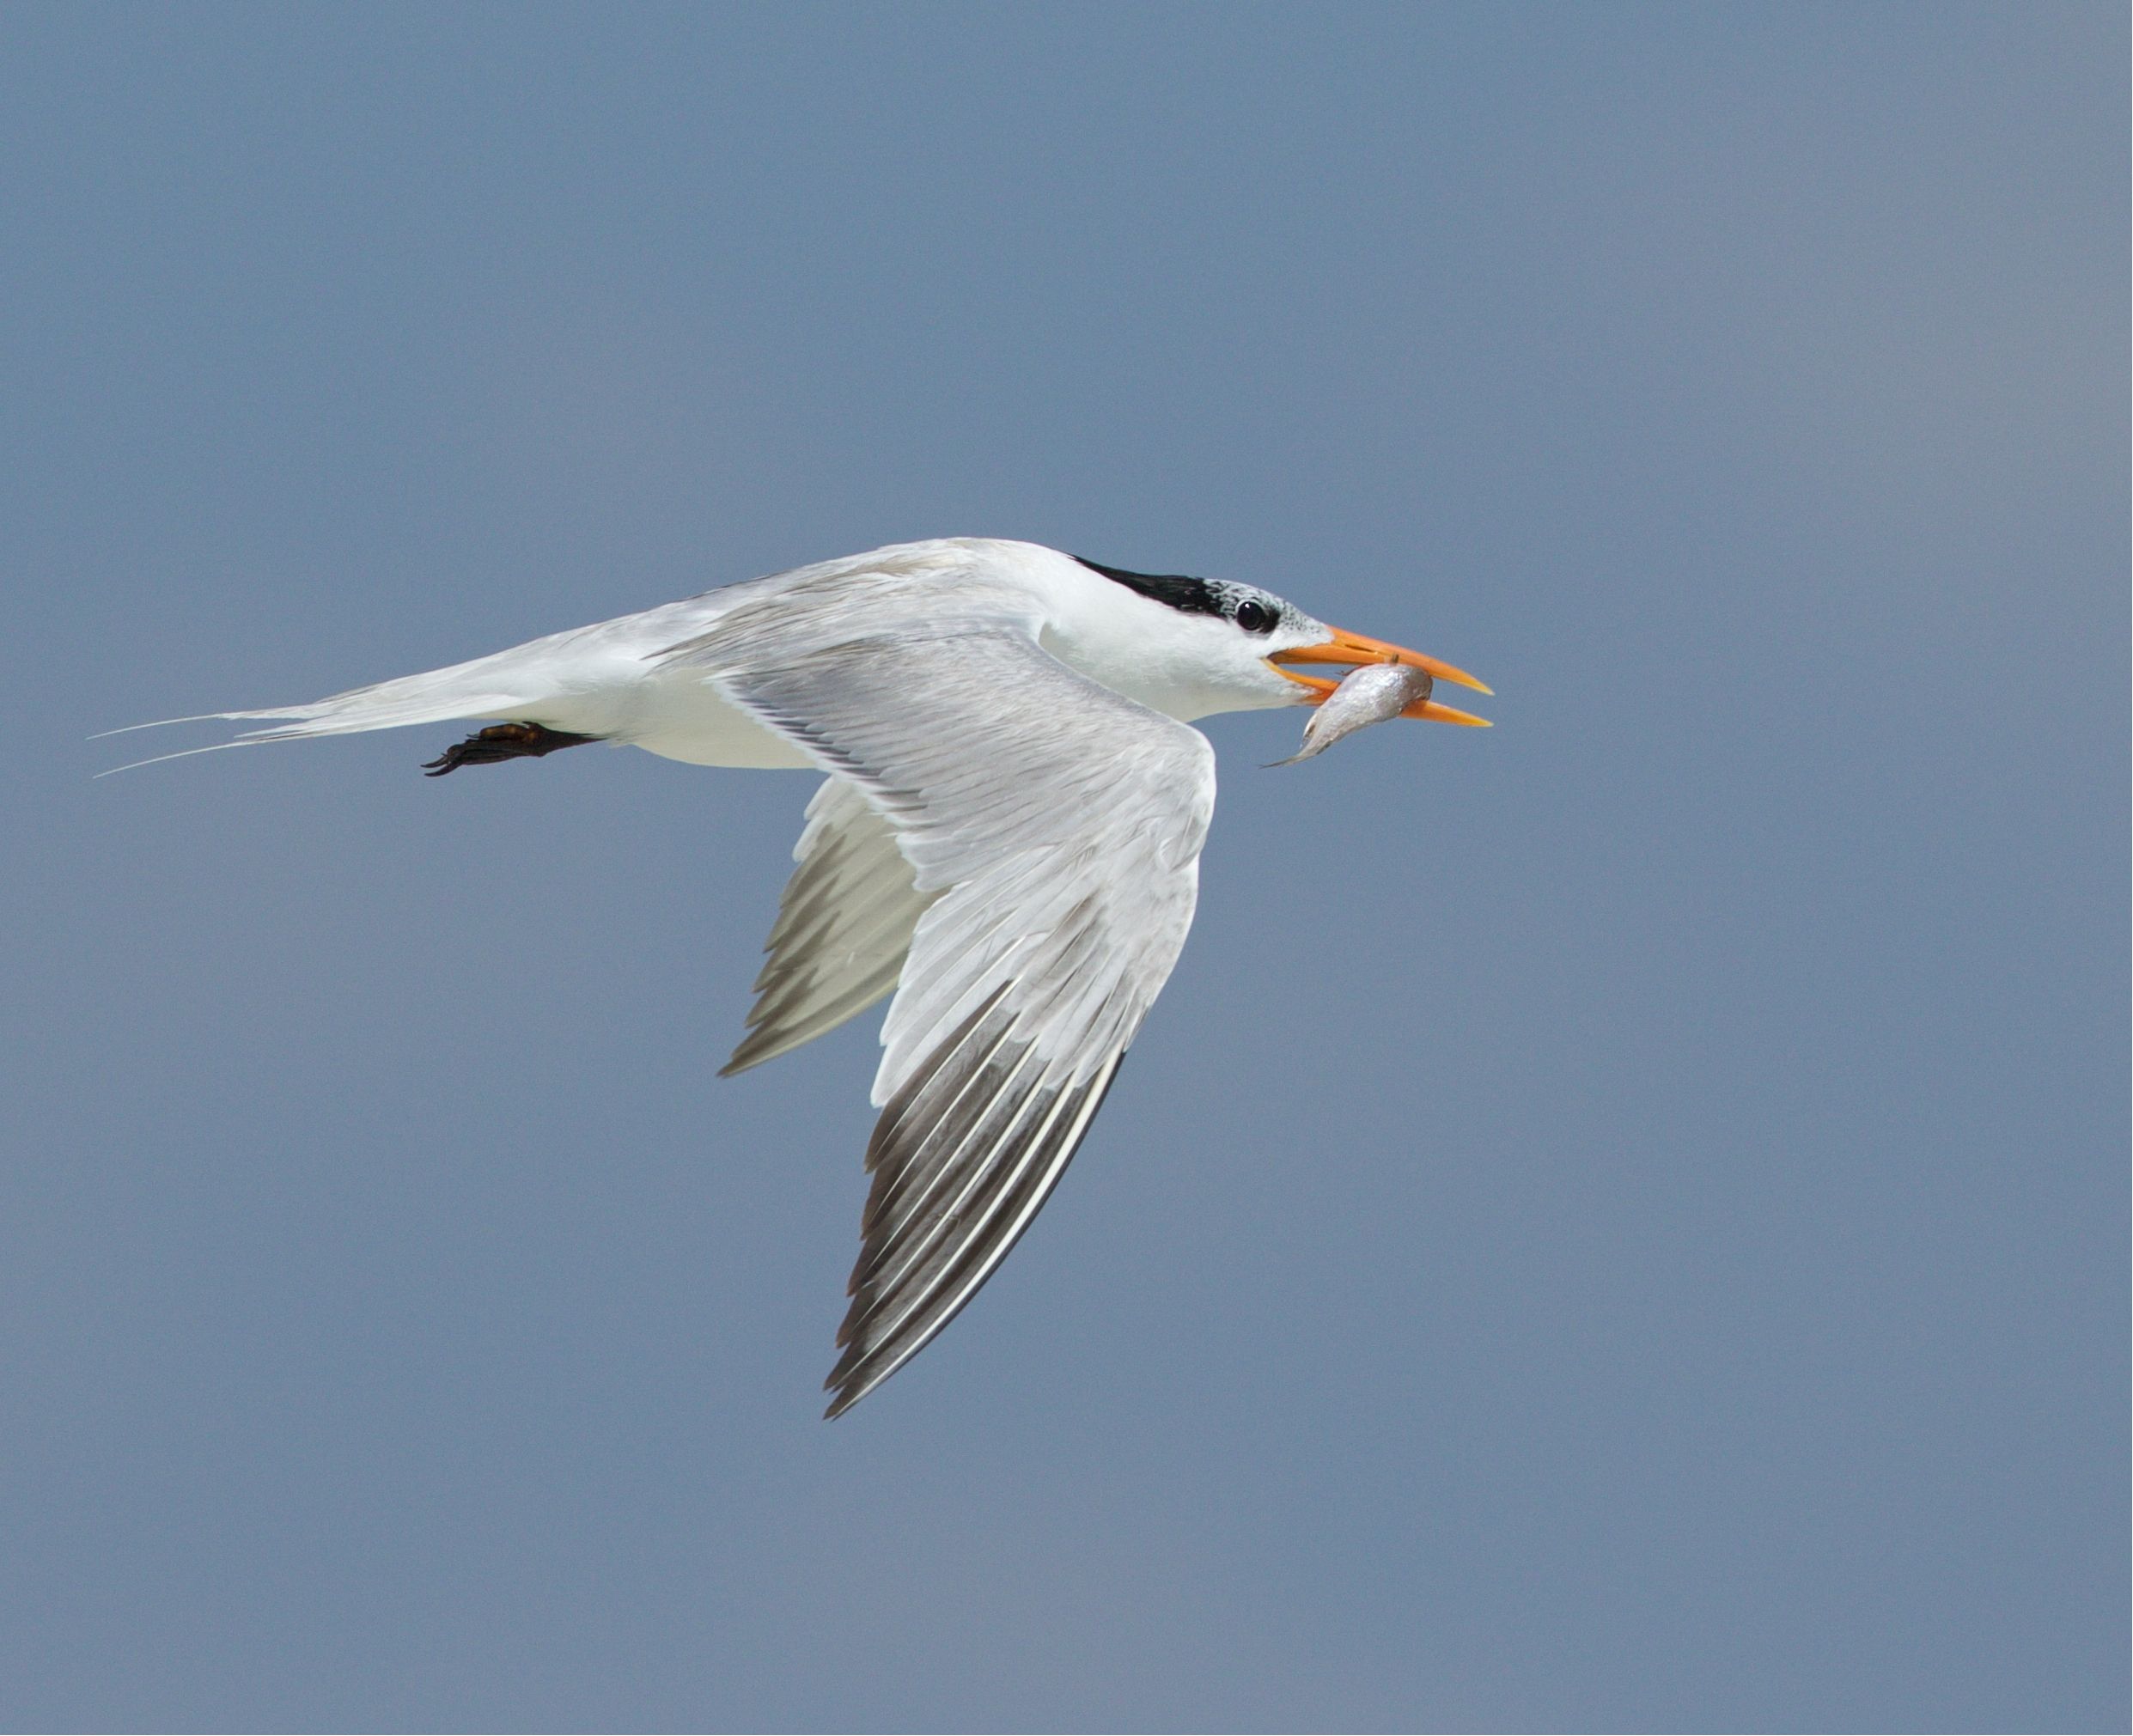 The loyal Royal Tern gets another fish for its chick..